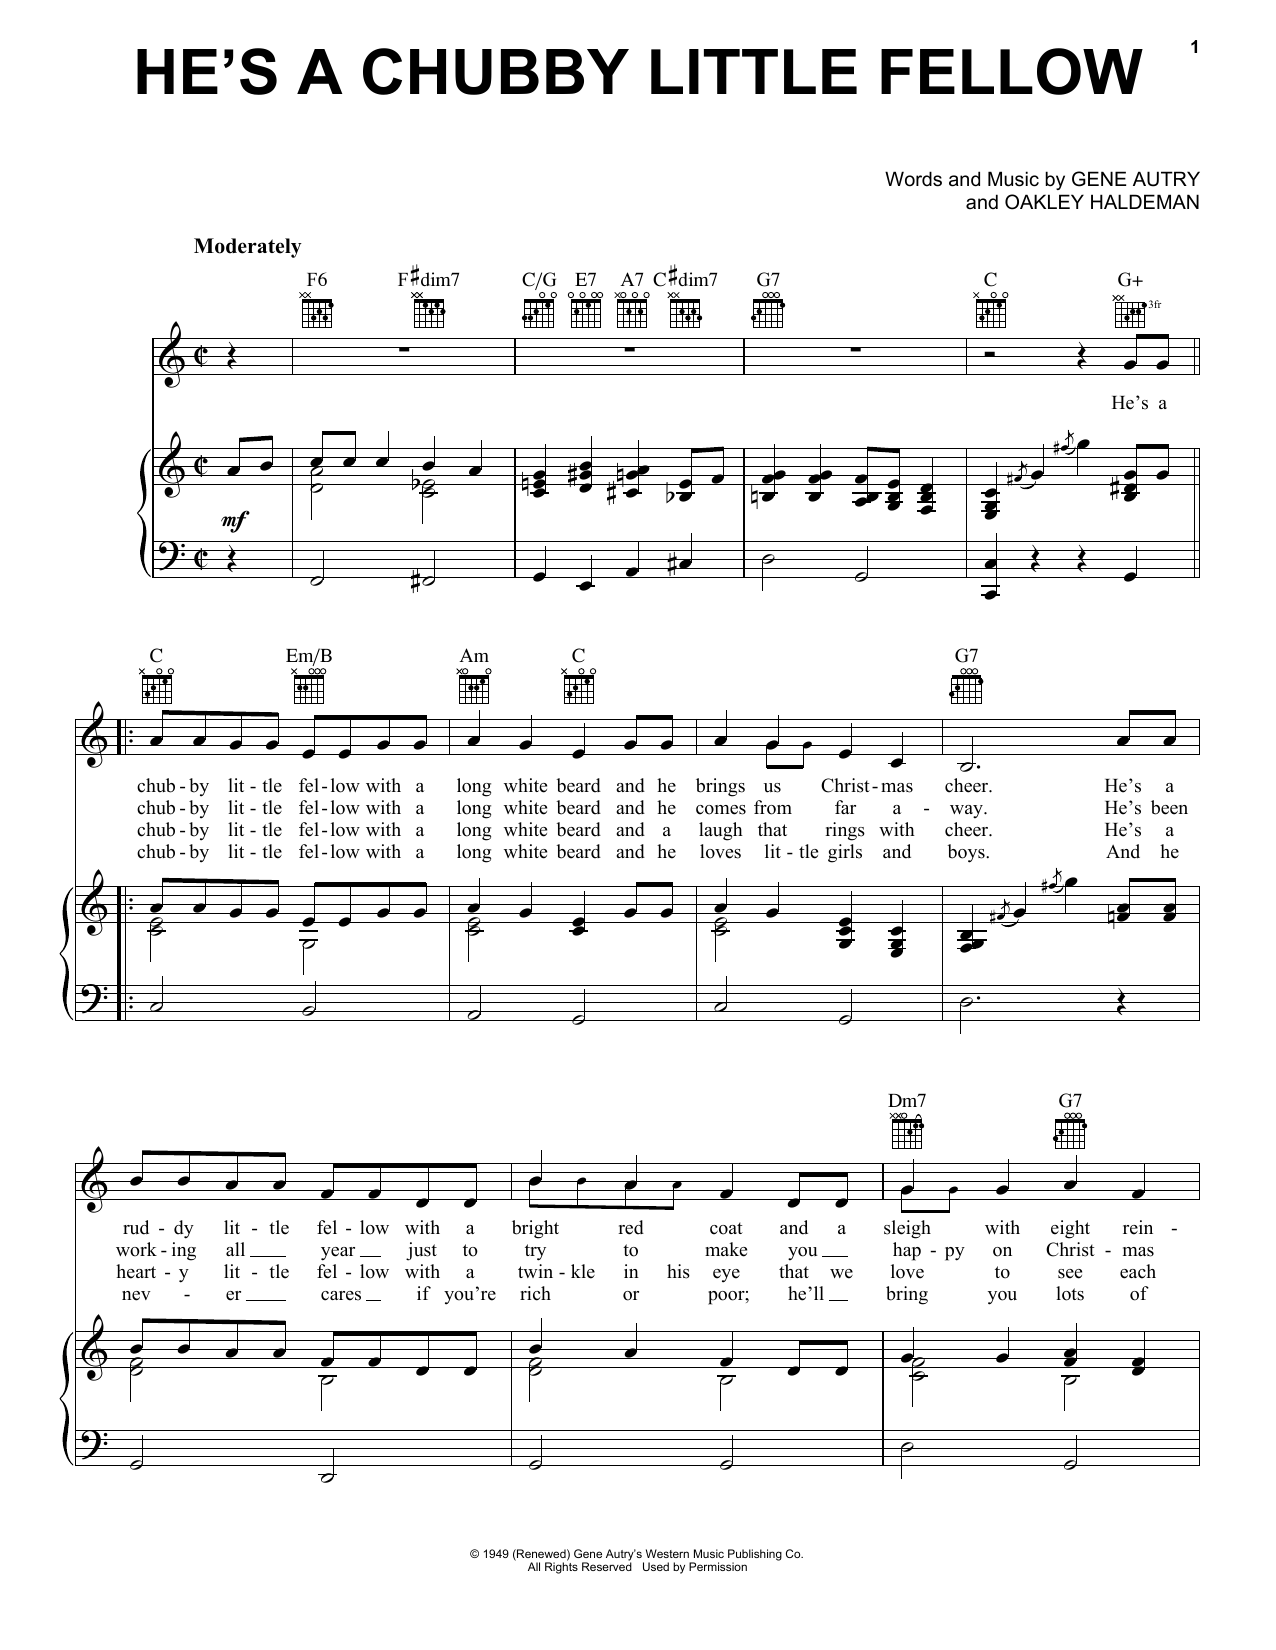 Gene Autry He's A Chubby Little Fellow sheet music notes and chords. Download Printable PDF.